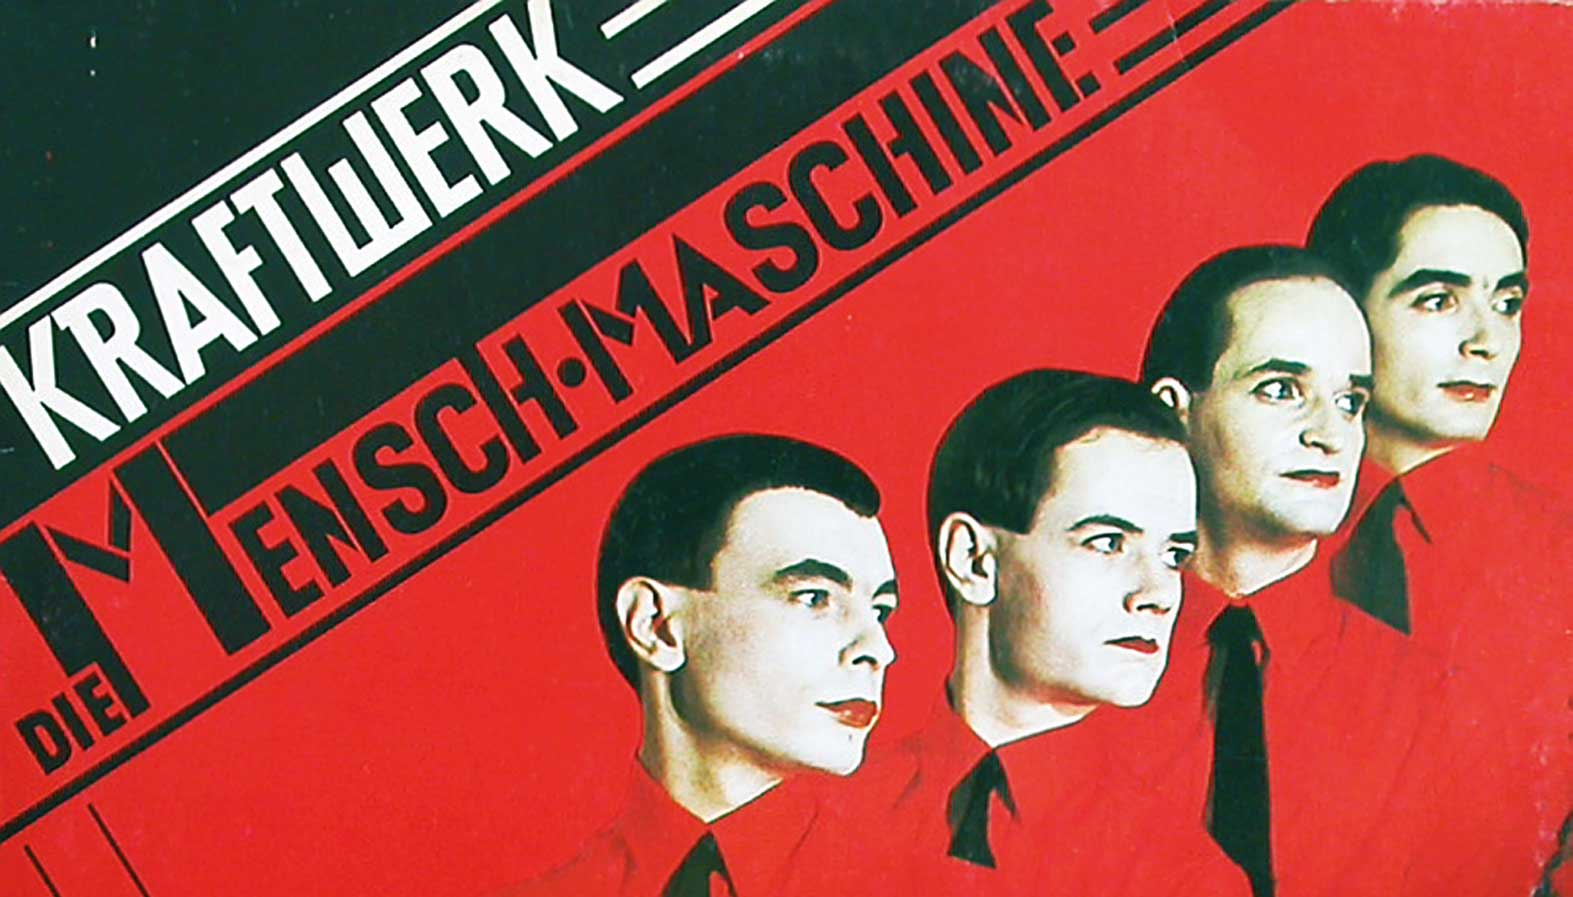 Kraftwerk in Detroit – German version